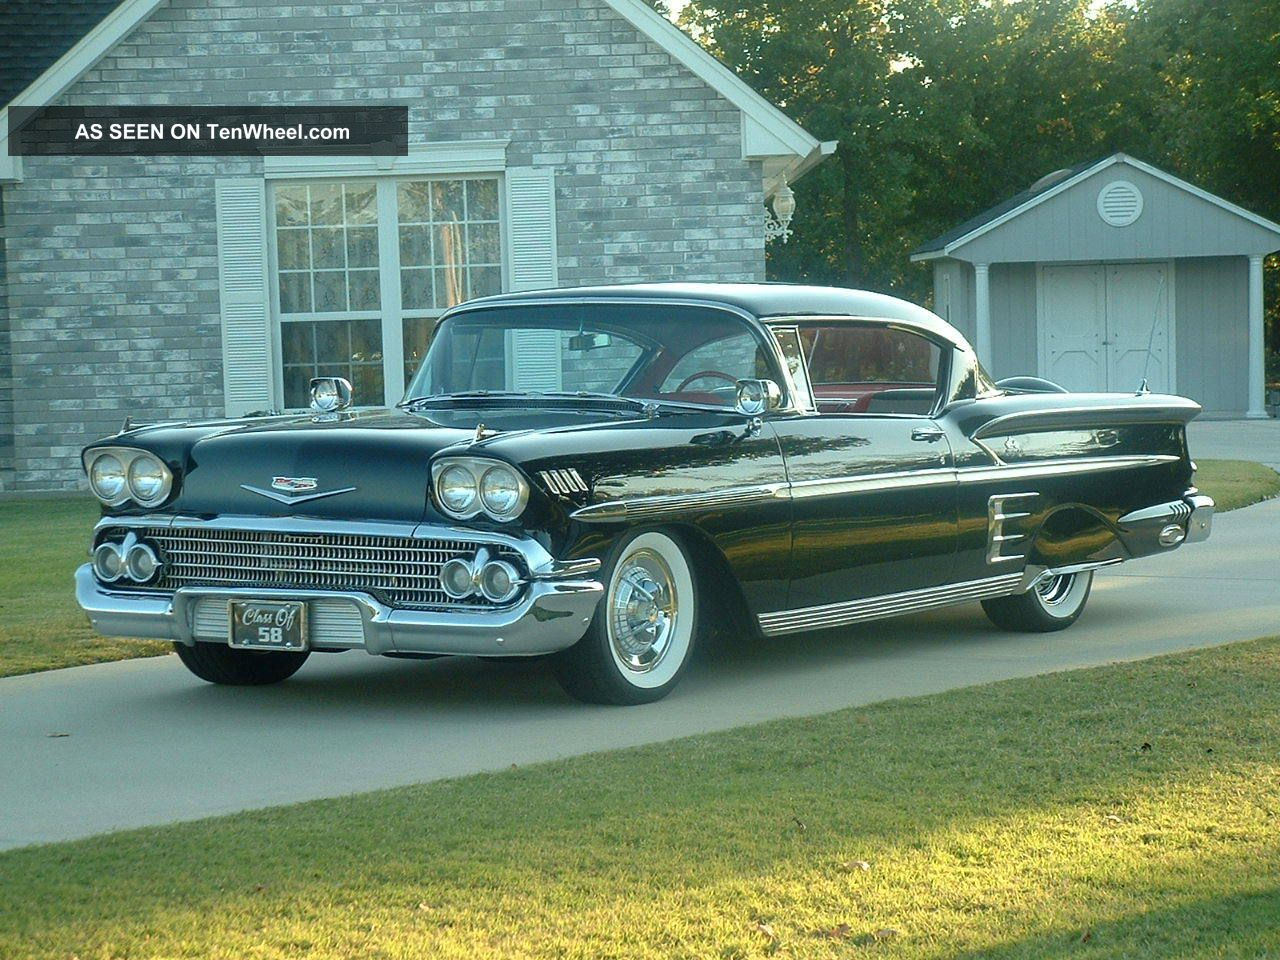 classic 1958 chevrolet impala. Cars Review. Best American Auto & Cars Review